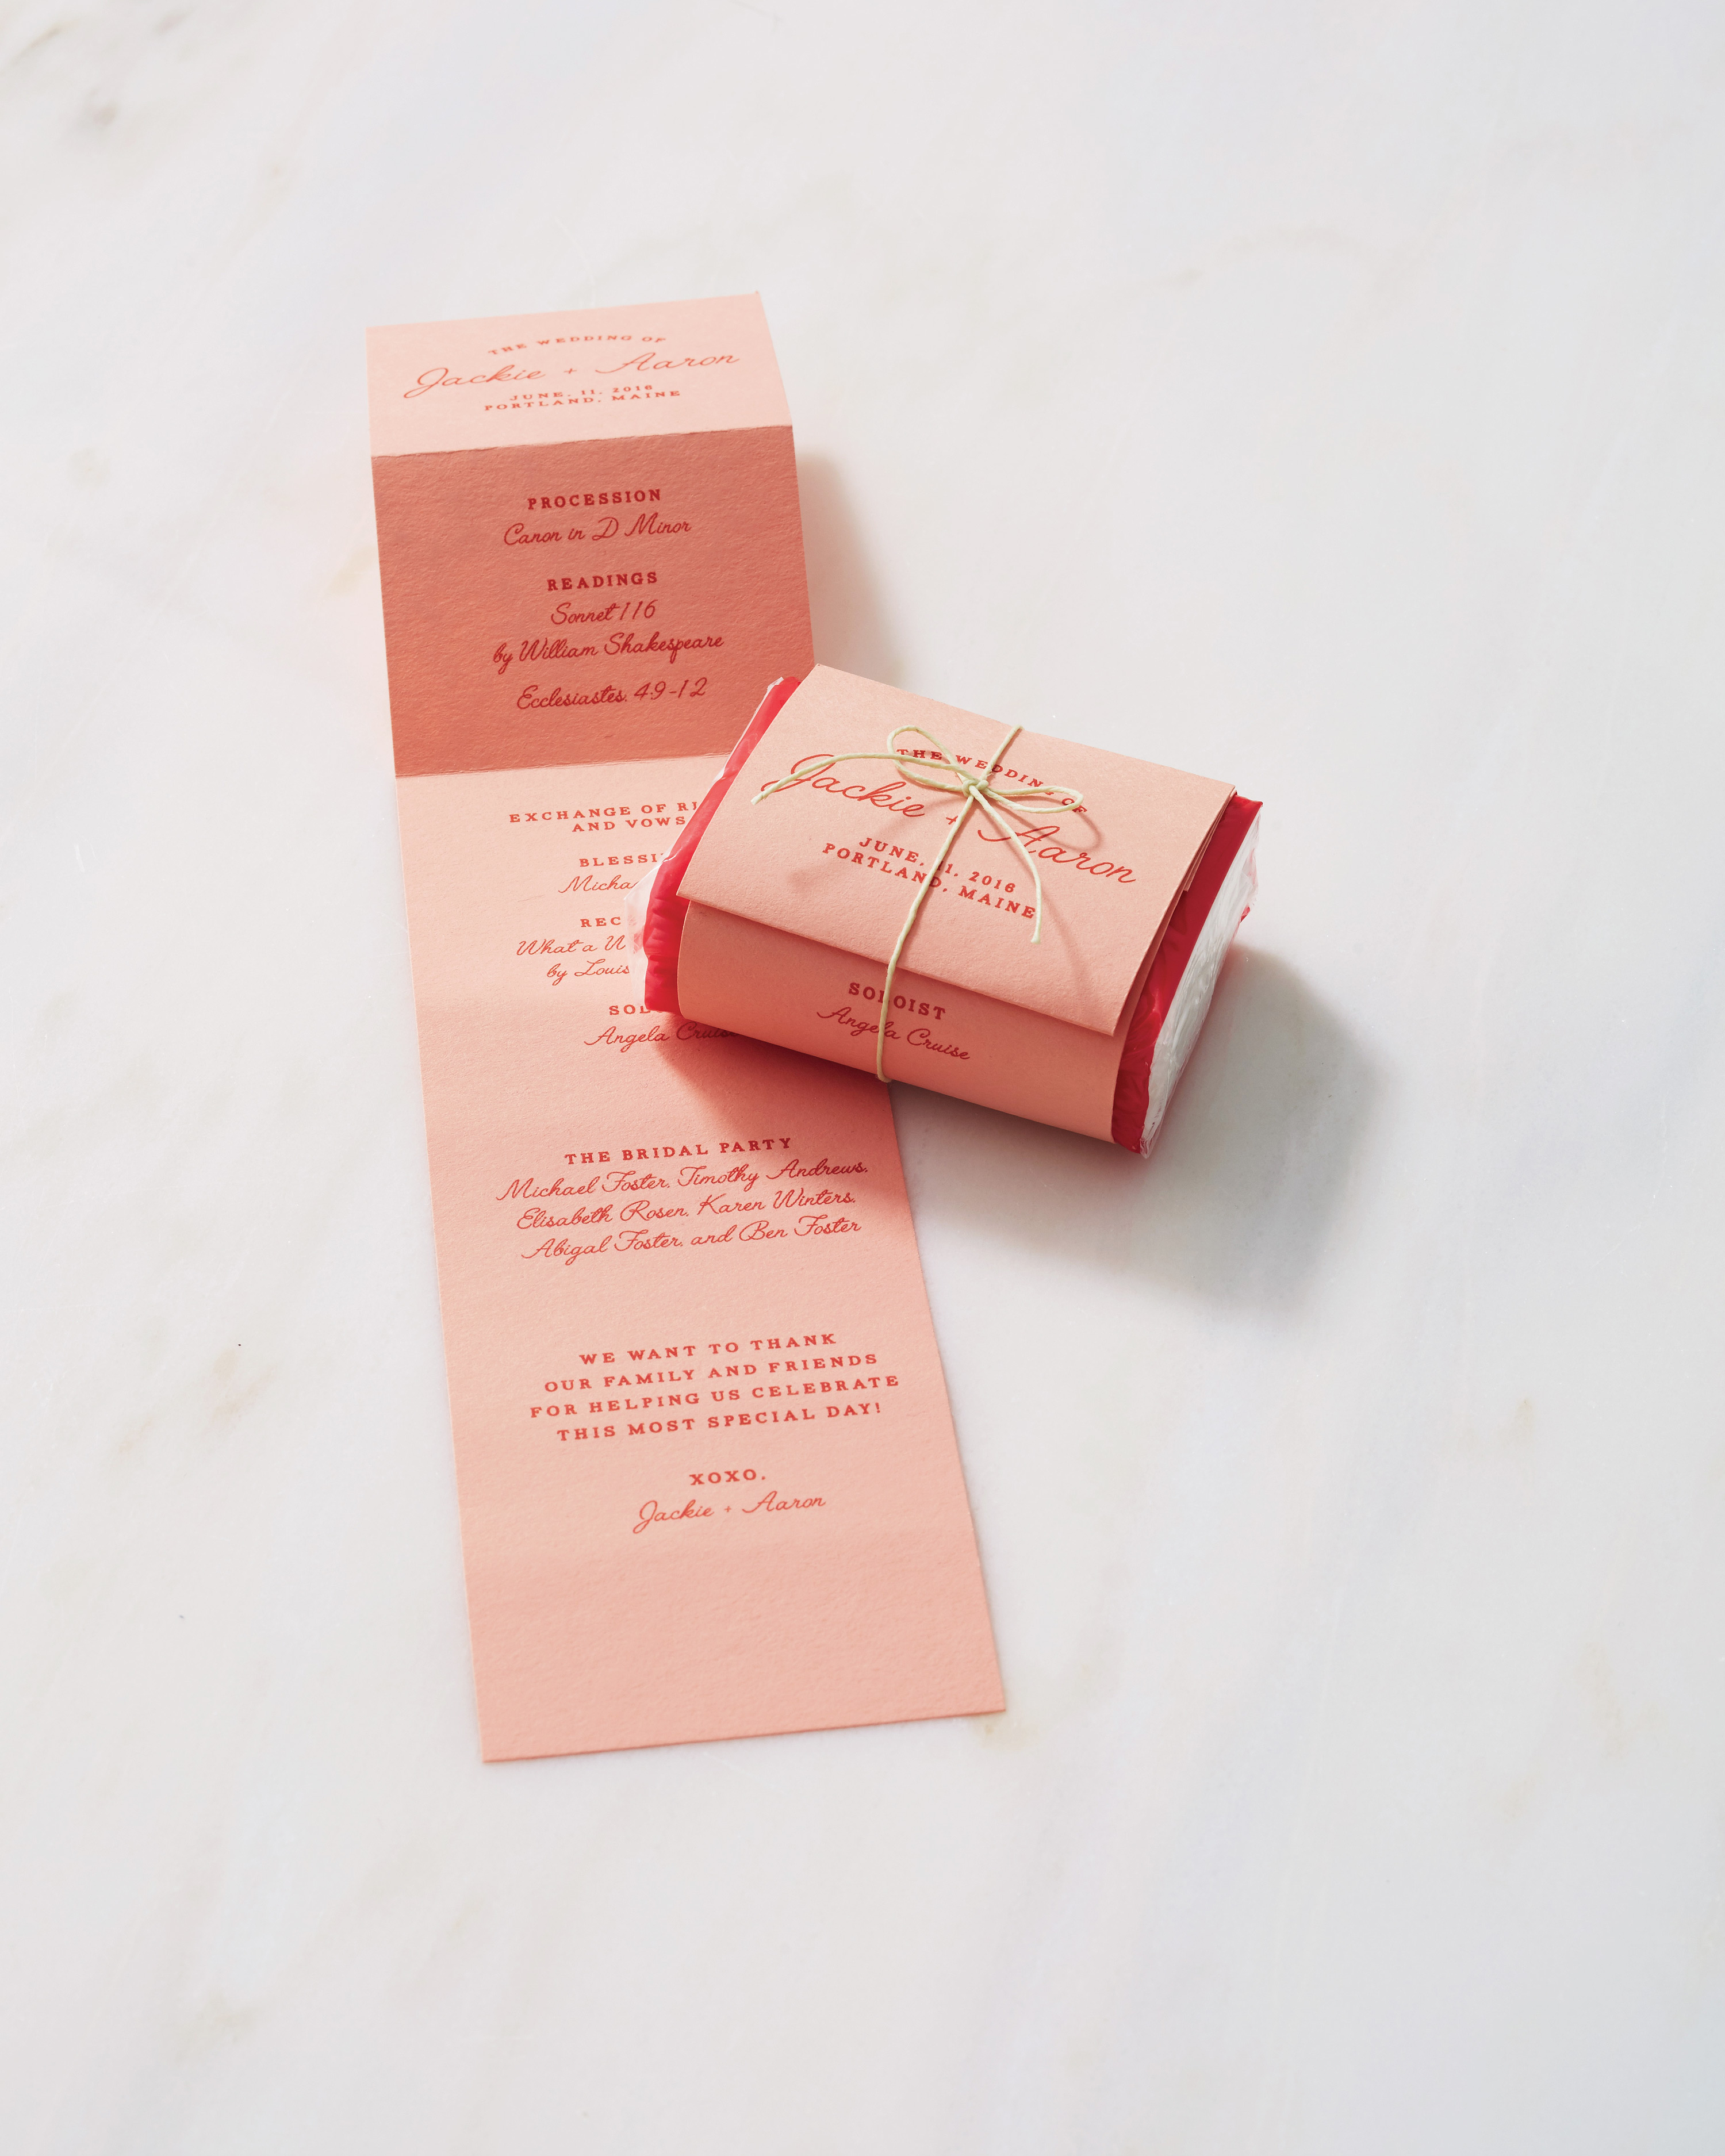 mini-tissue-pack-wrap-ceremony-program-252-d112790.jpg